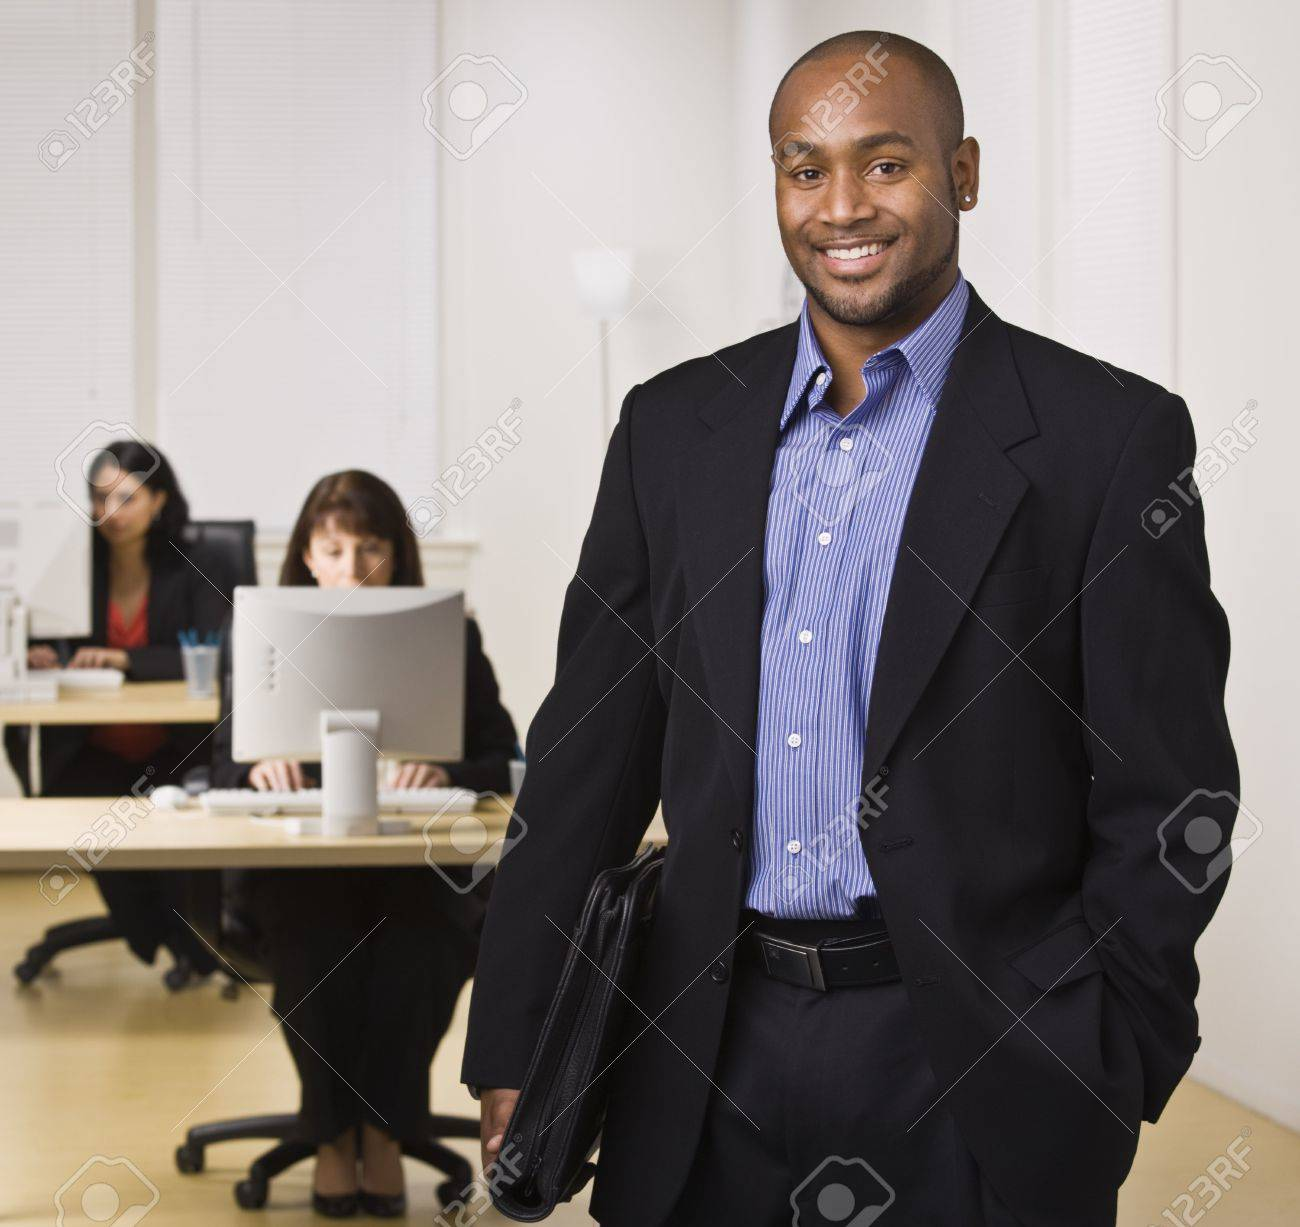 A young businessman is standing in an office with some other business people.  He is smiling at the camera.  Horizontally framed shot. Stock Photo - 5333162